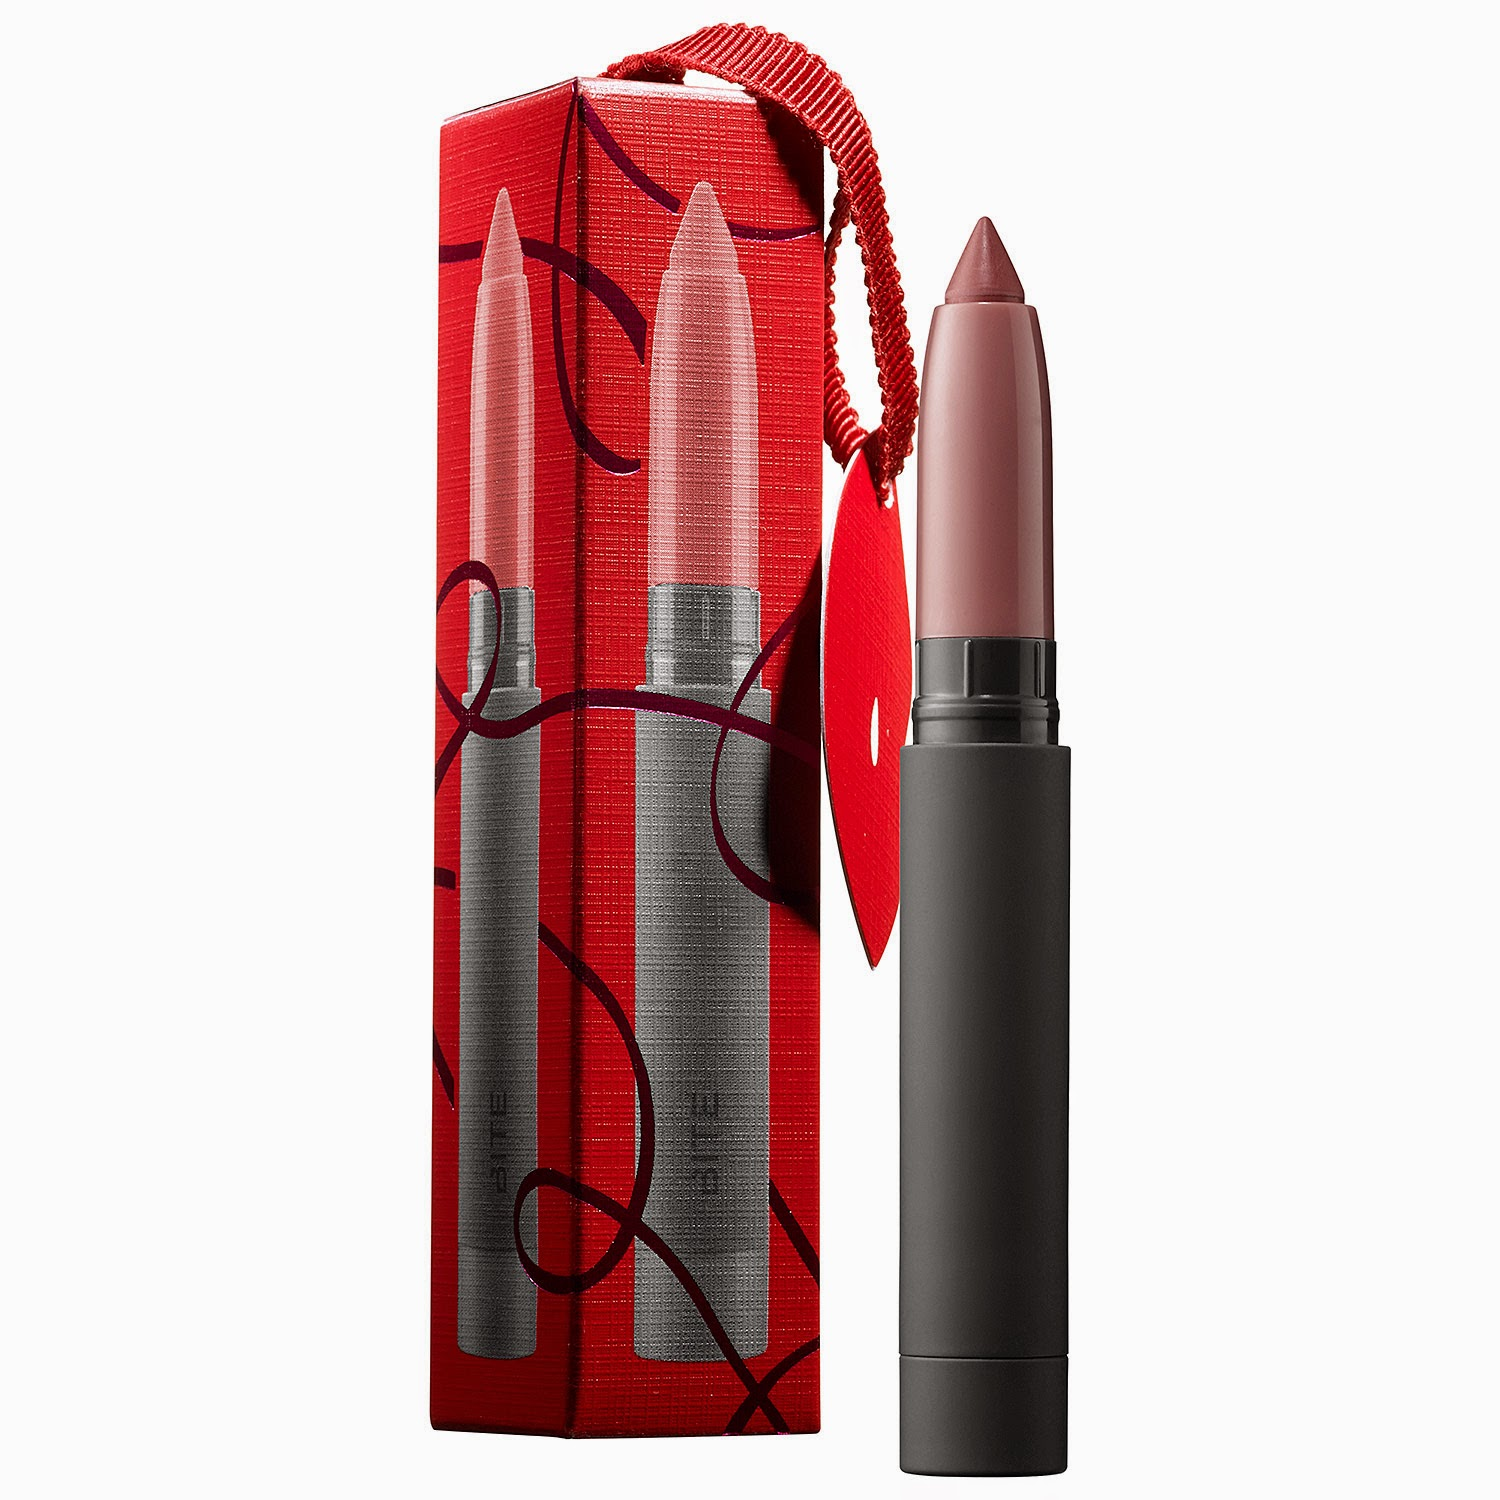 Bite Beauty Mix N' Mingle Lip Minis Matte Crème Lip Crayon - Glacé